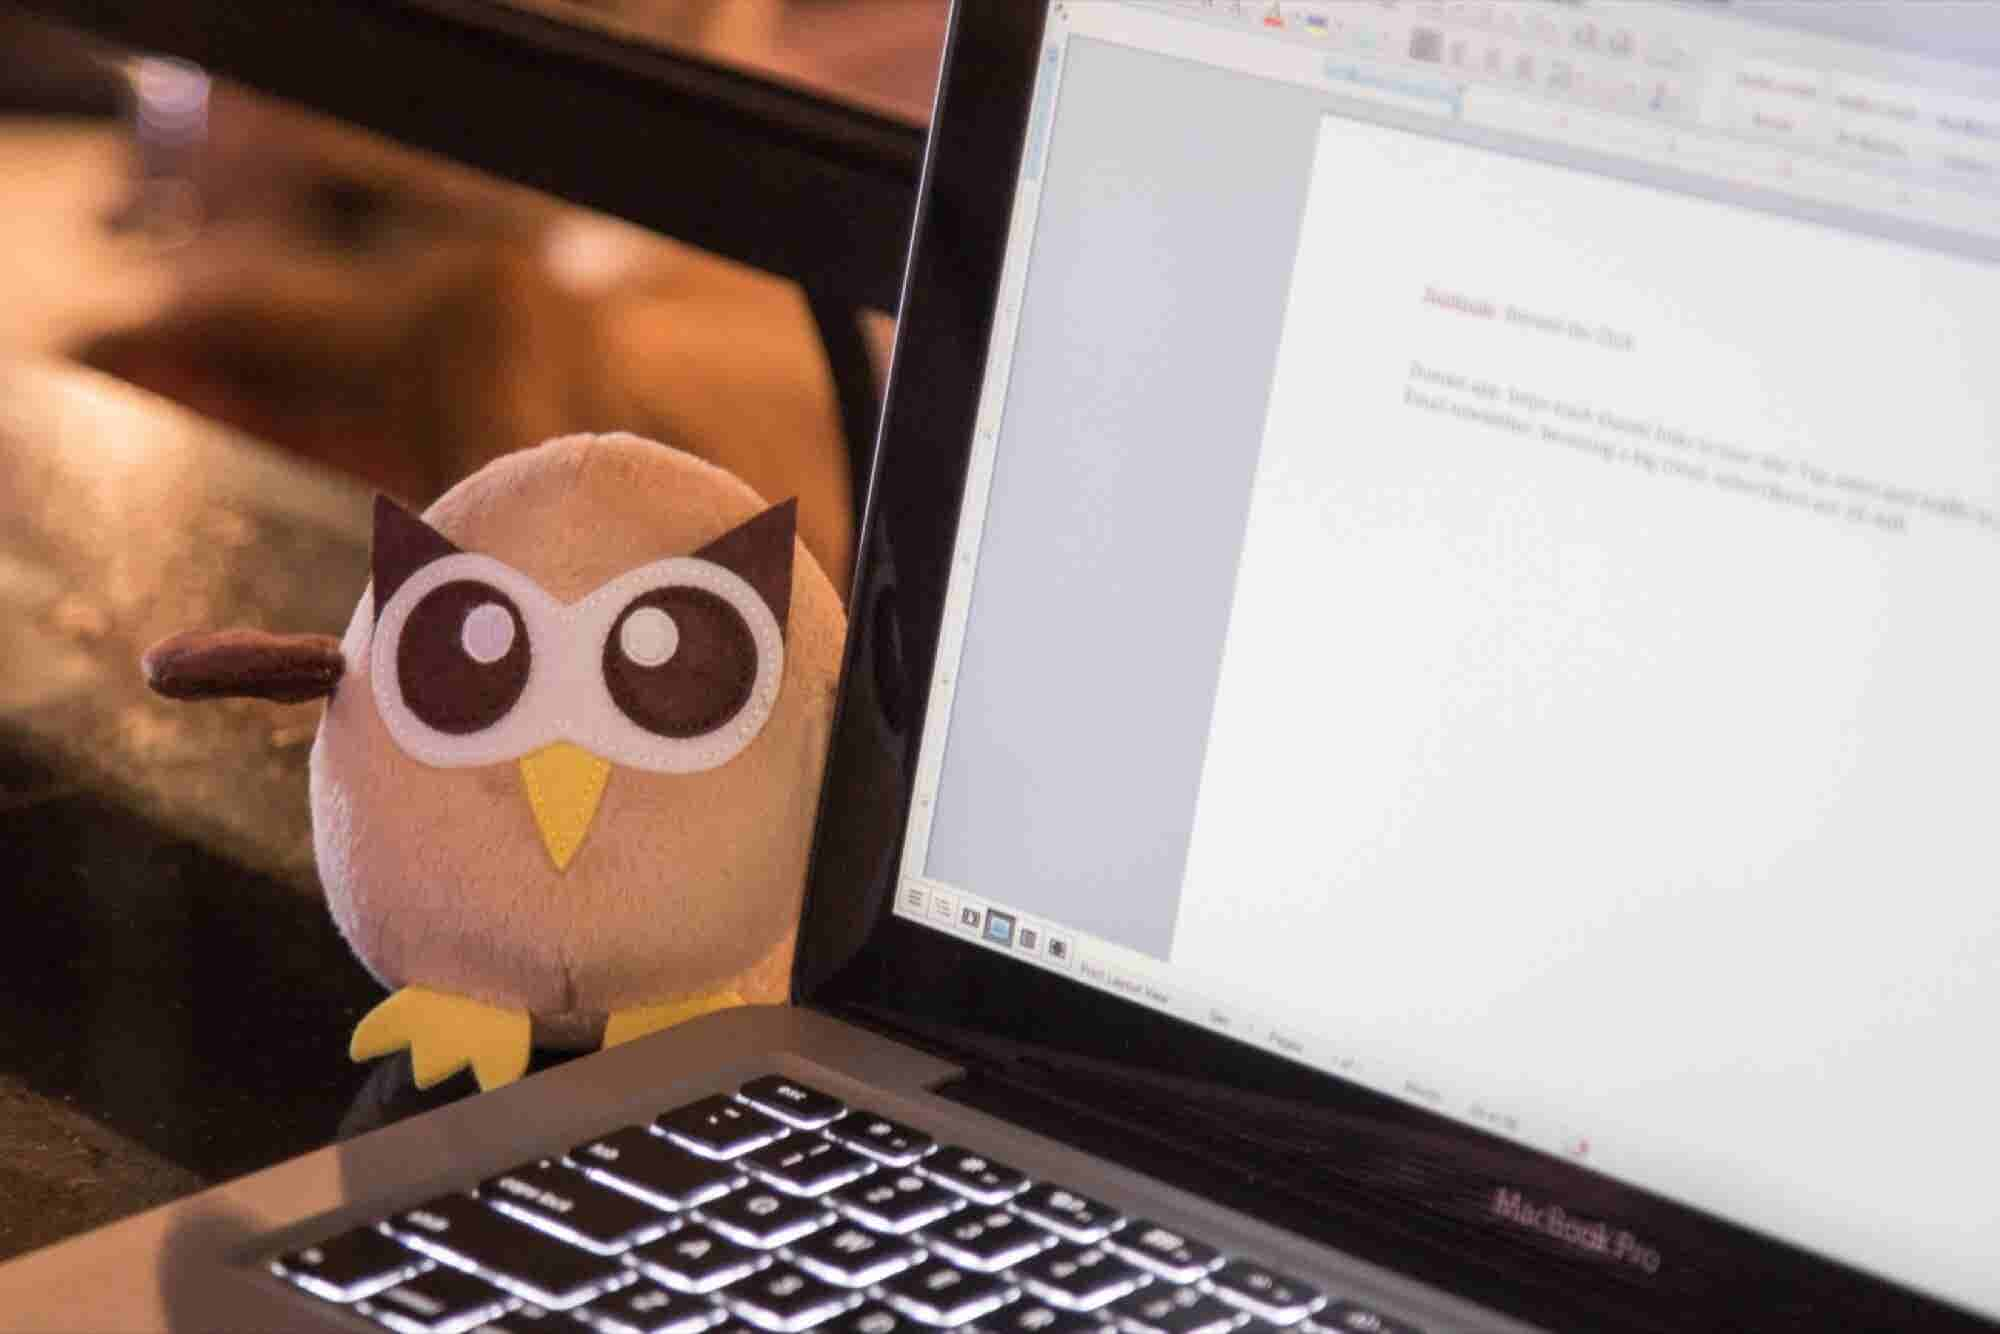 Hootsuite Says It Could Go Public Sooner After Shopify's IPO Success